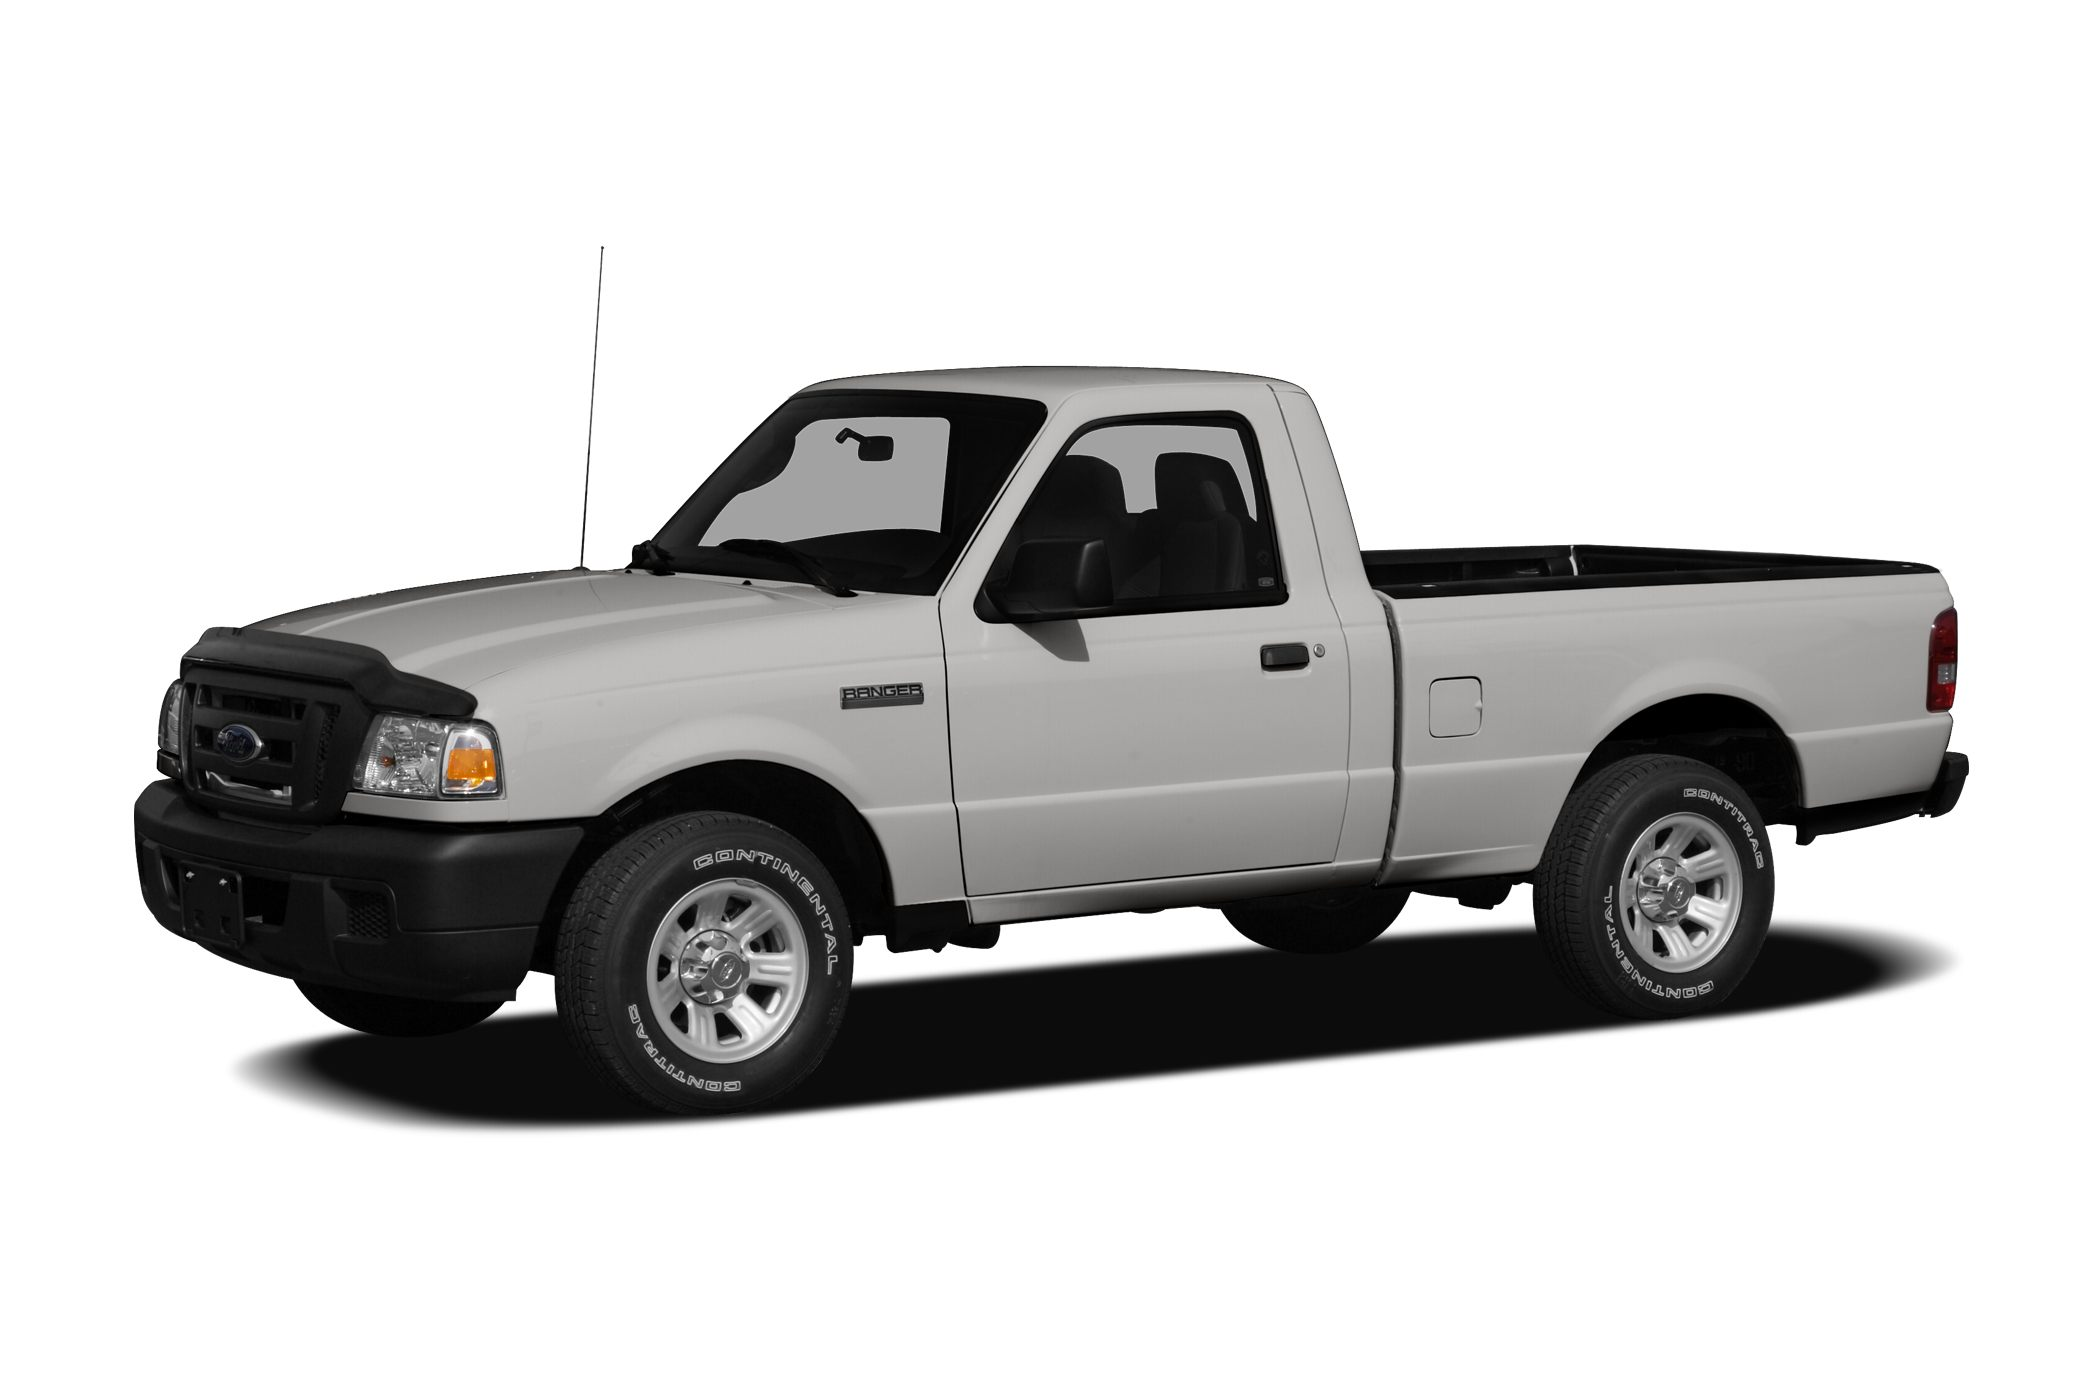 2006 Ford Ranger XLT Extended Cab Pickup for sale in Reidsville for $0 with 85,209 miles